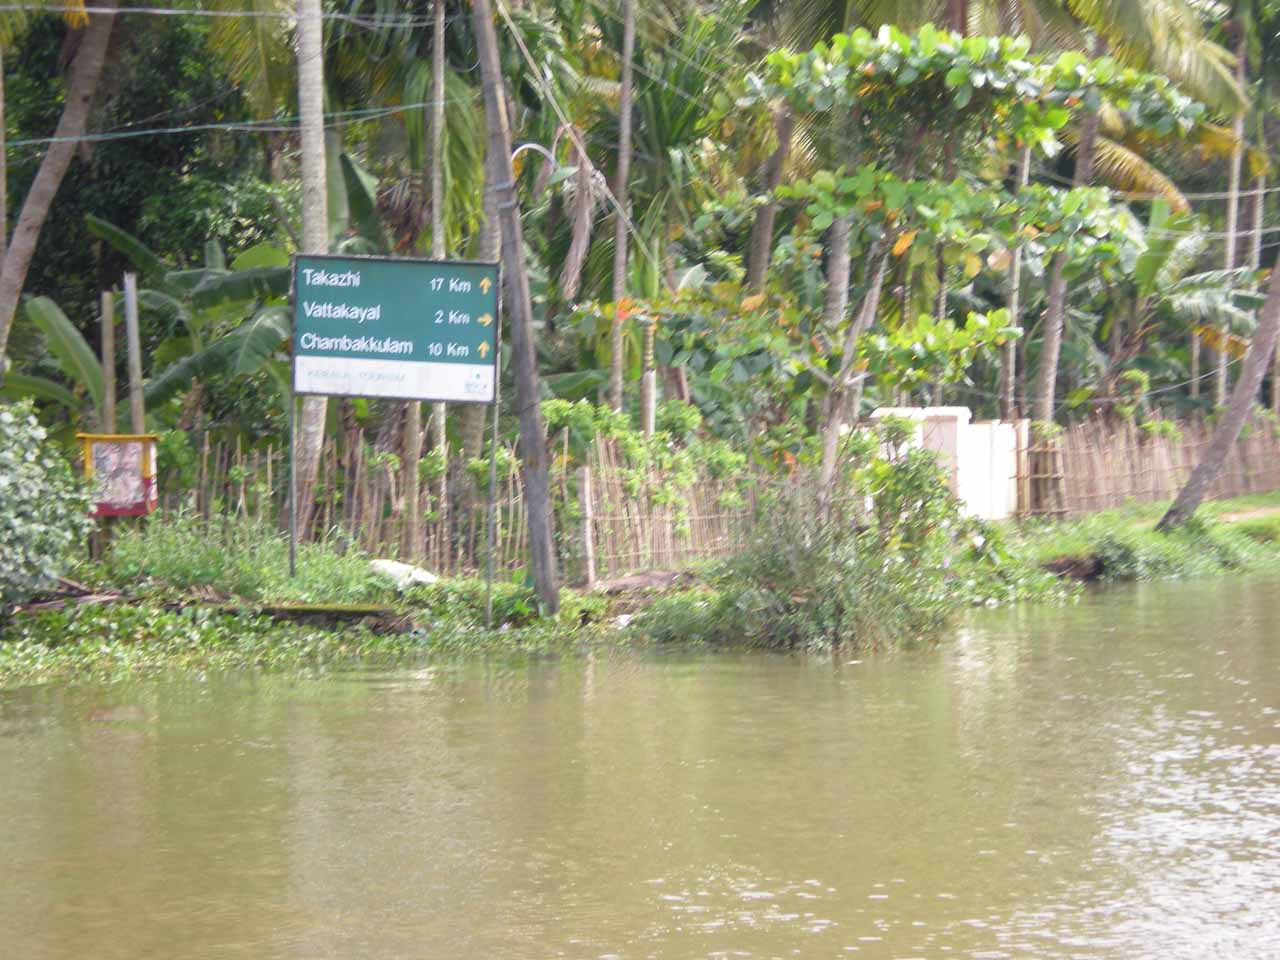 Road sign besides the canal